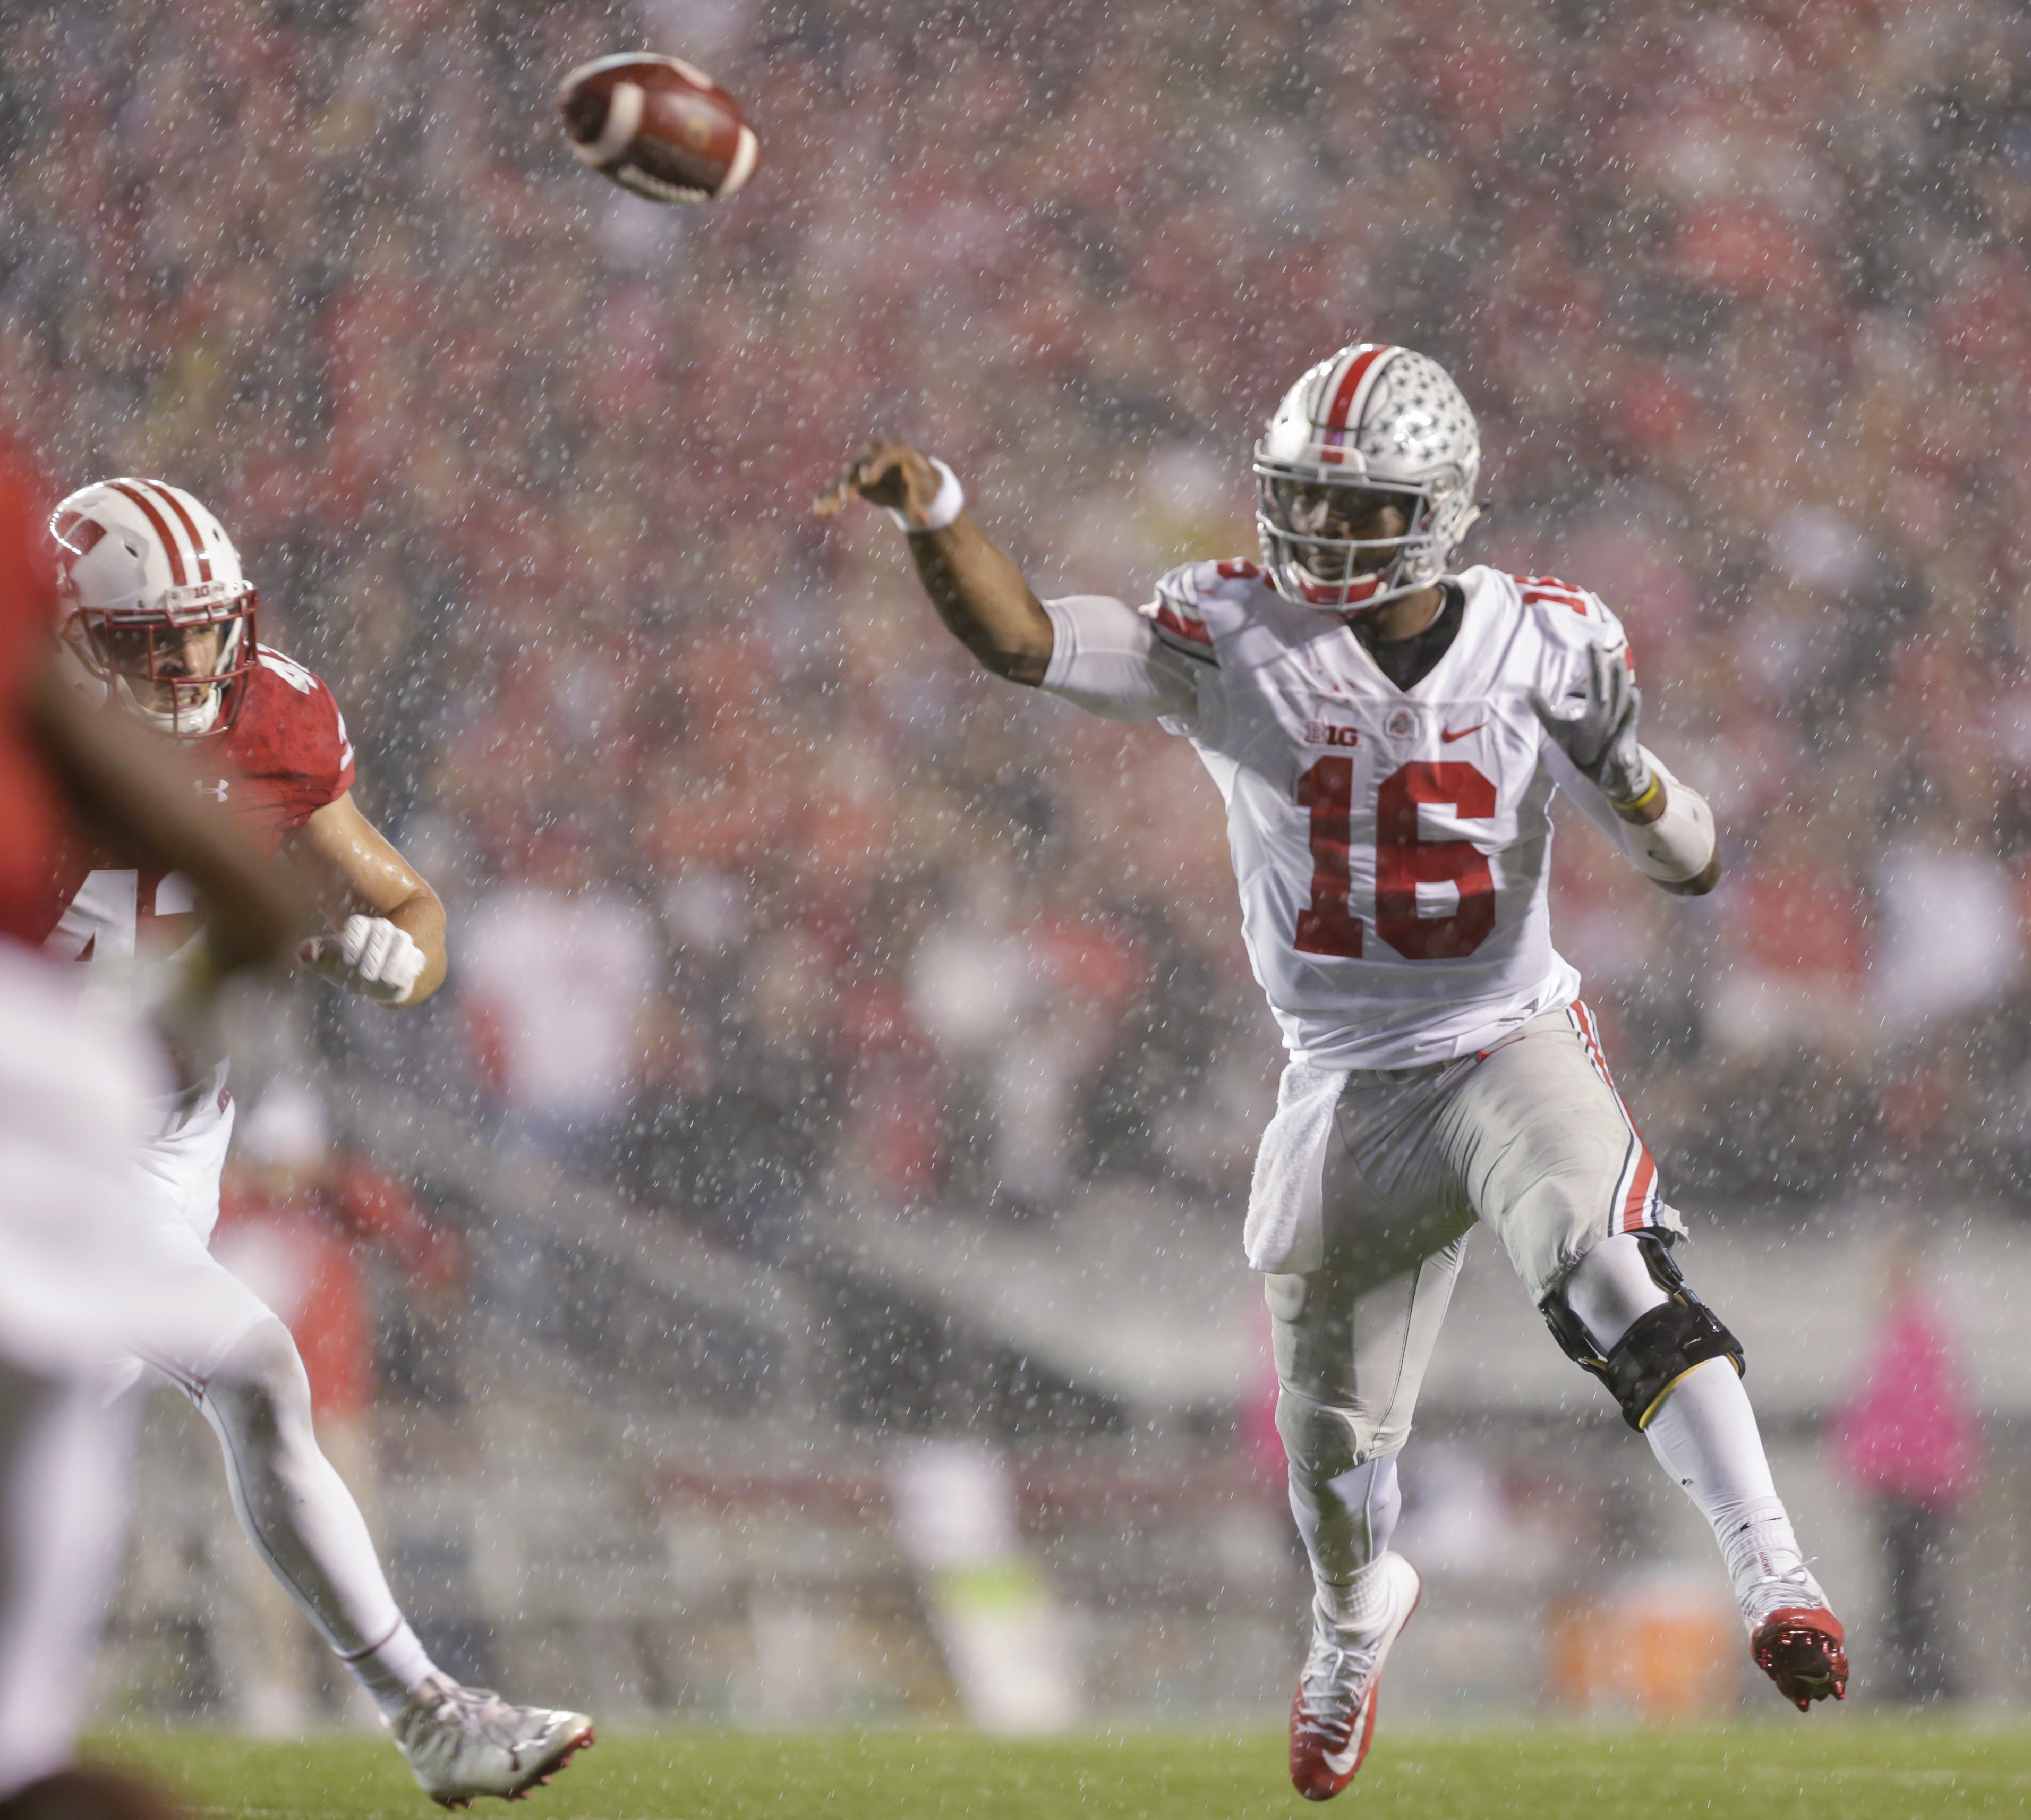 Ohio State quarterback J.T. Barrett passes against Wisconsin during the second half of an NCAA college football game Saturday, Oct. 15, 2016, in Madison, Wis. Ohio State won 30-23 in overtime. (AP Photo/Andy Manis)